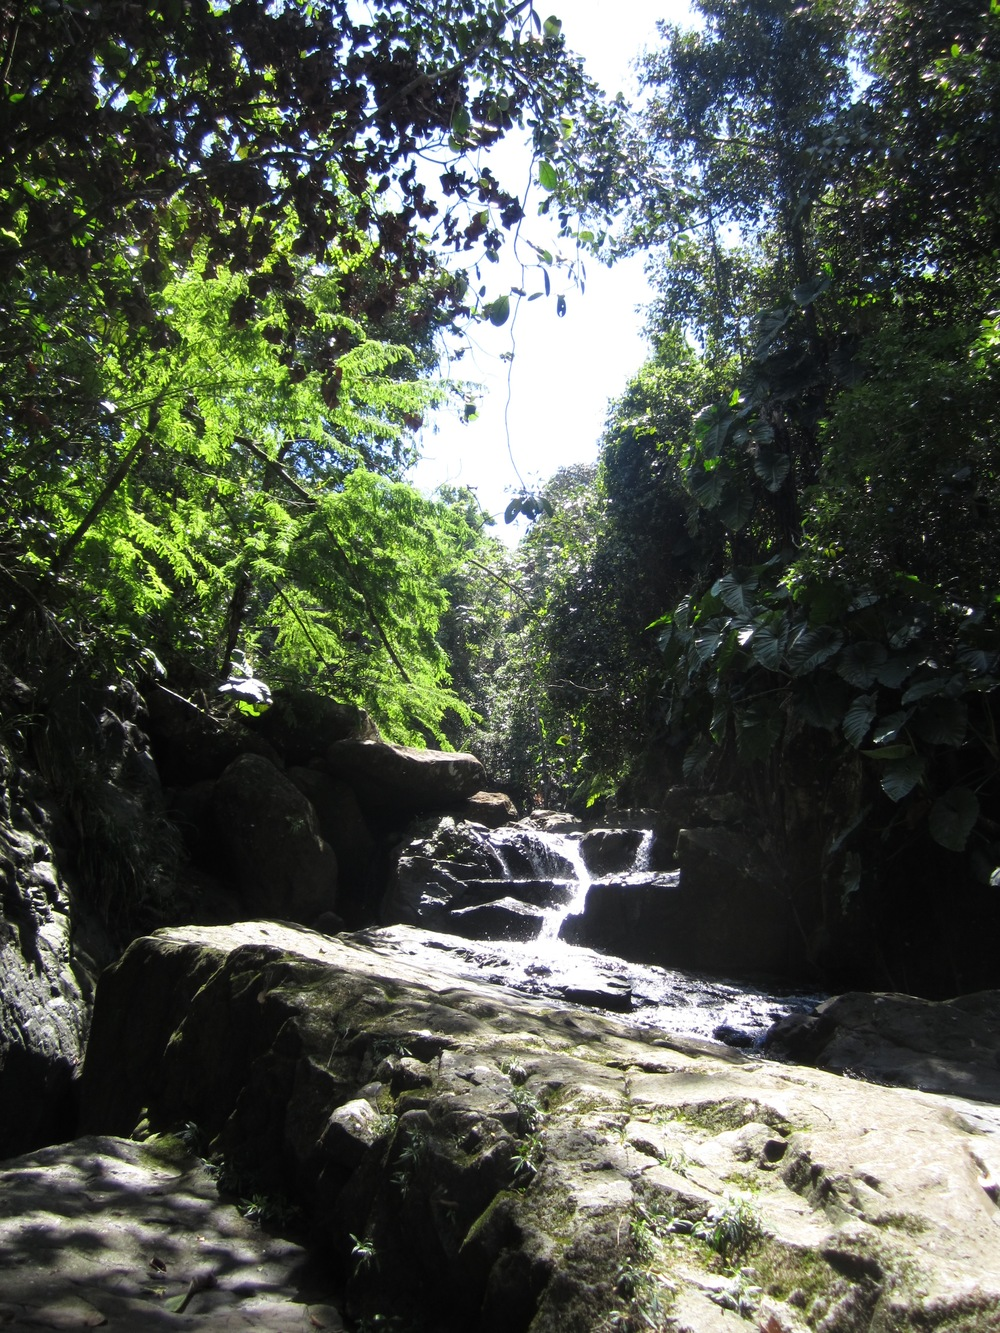 Delight in your backyard rainforest at our B&B. Test yourself on our exclusive Lost Machete Hike.